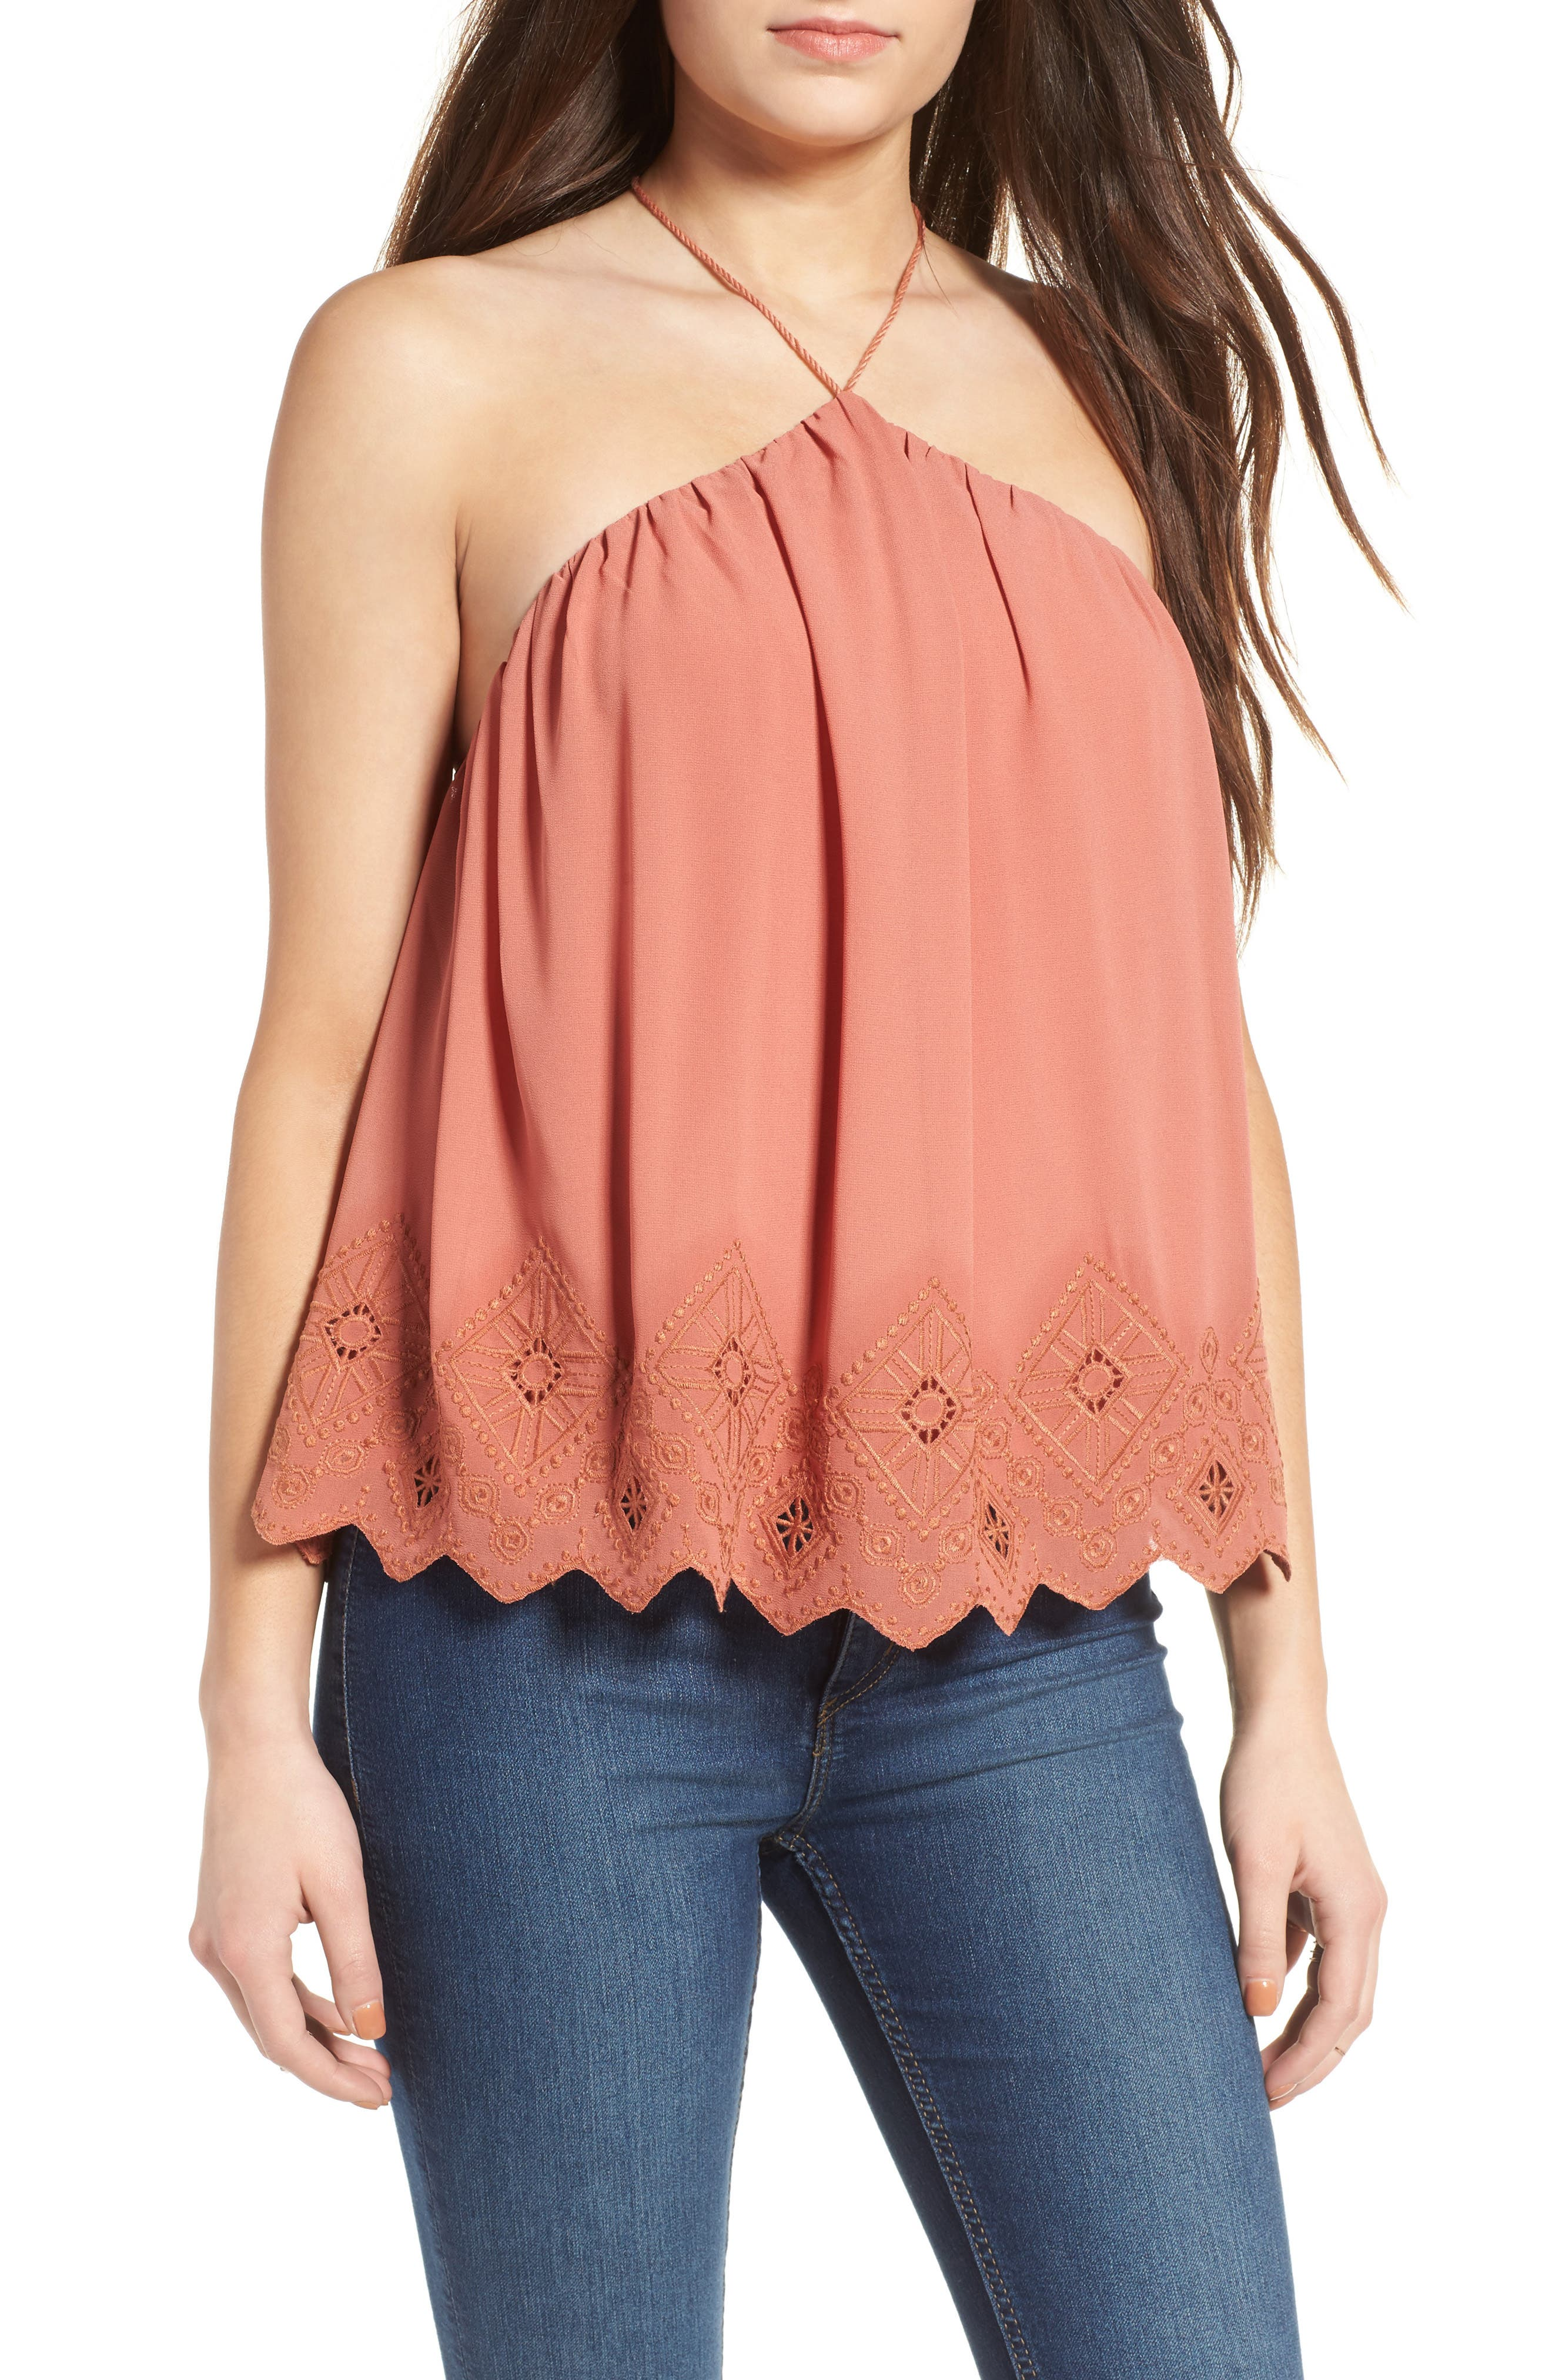 Alternate Image 1 Selected - ASTR the Label Lace Halter Tank